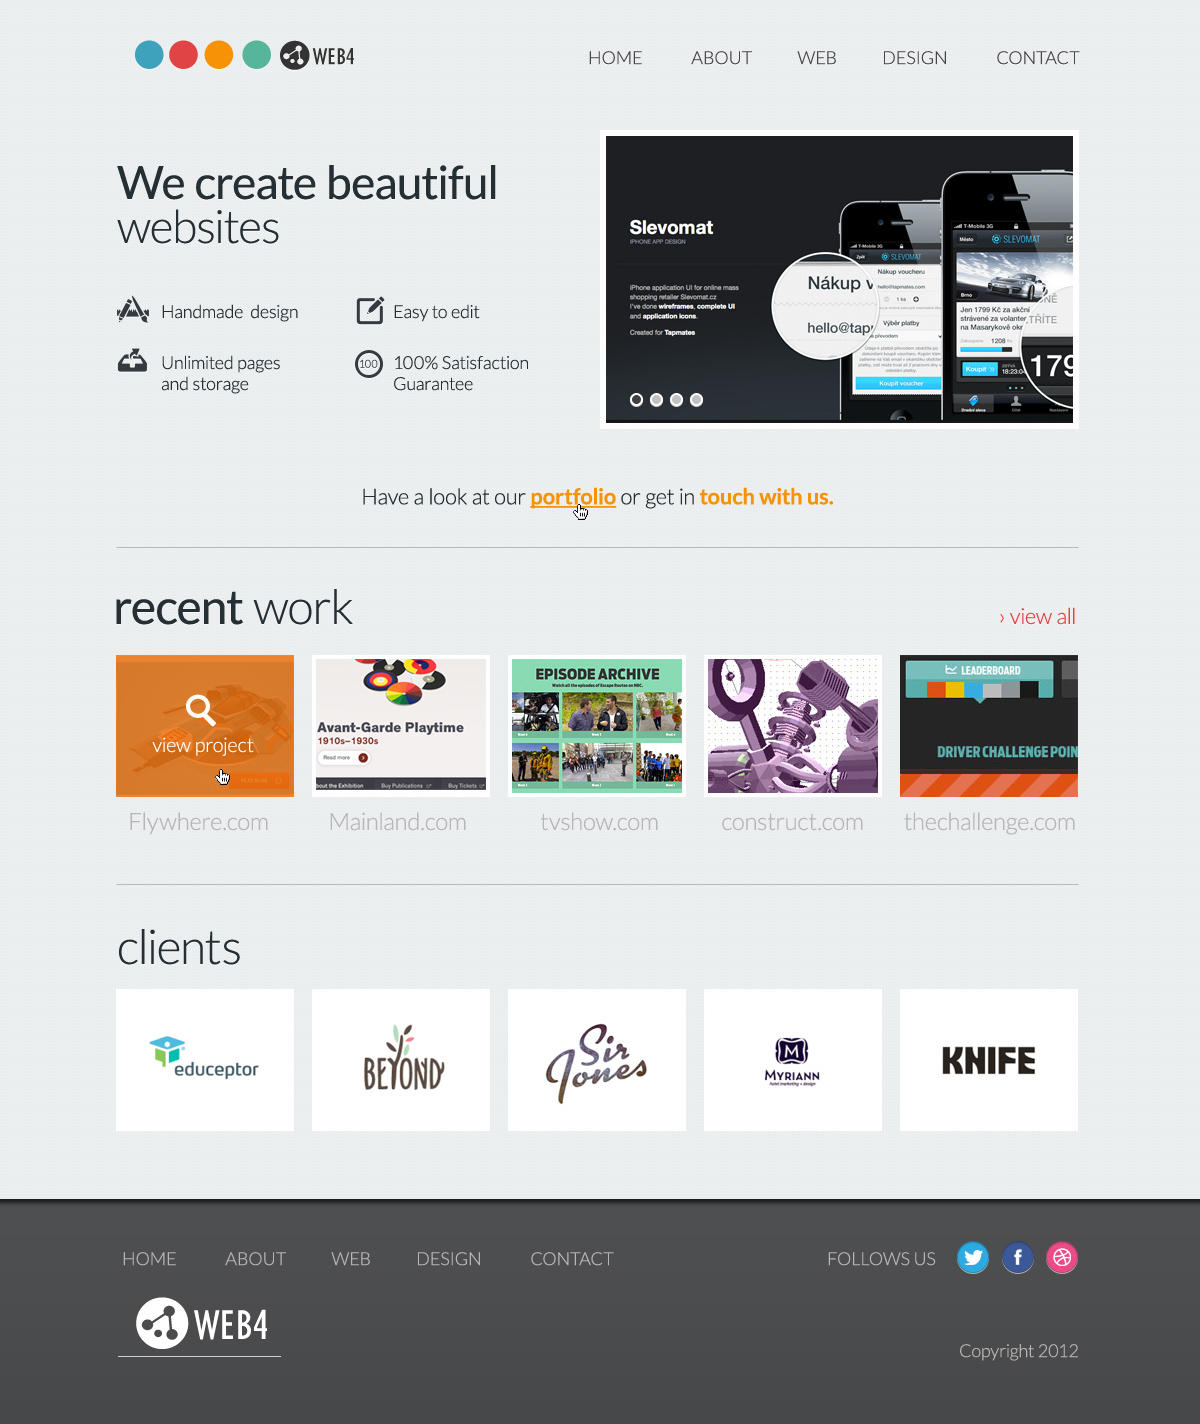 Website Home Page Design by ezikel - 13045